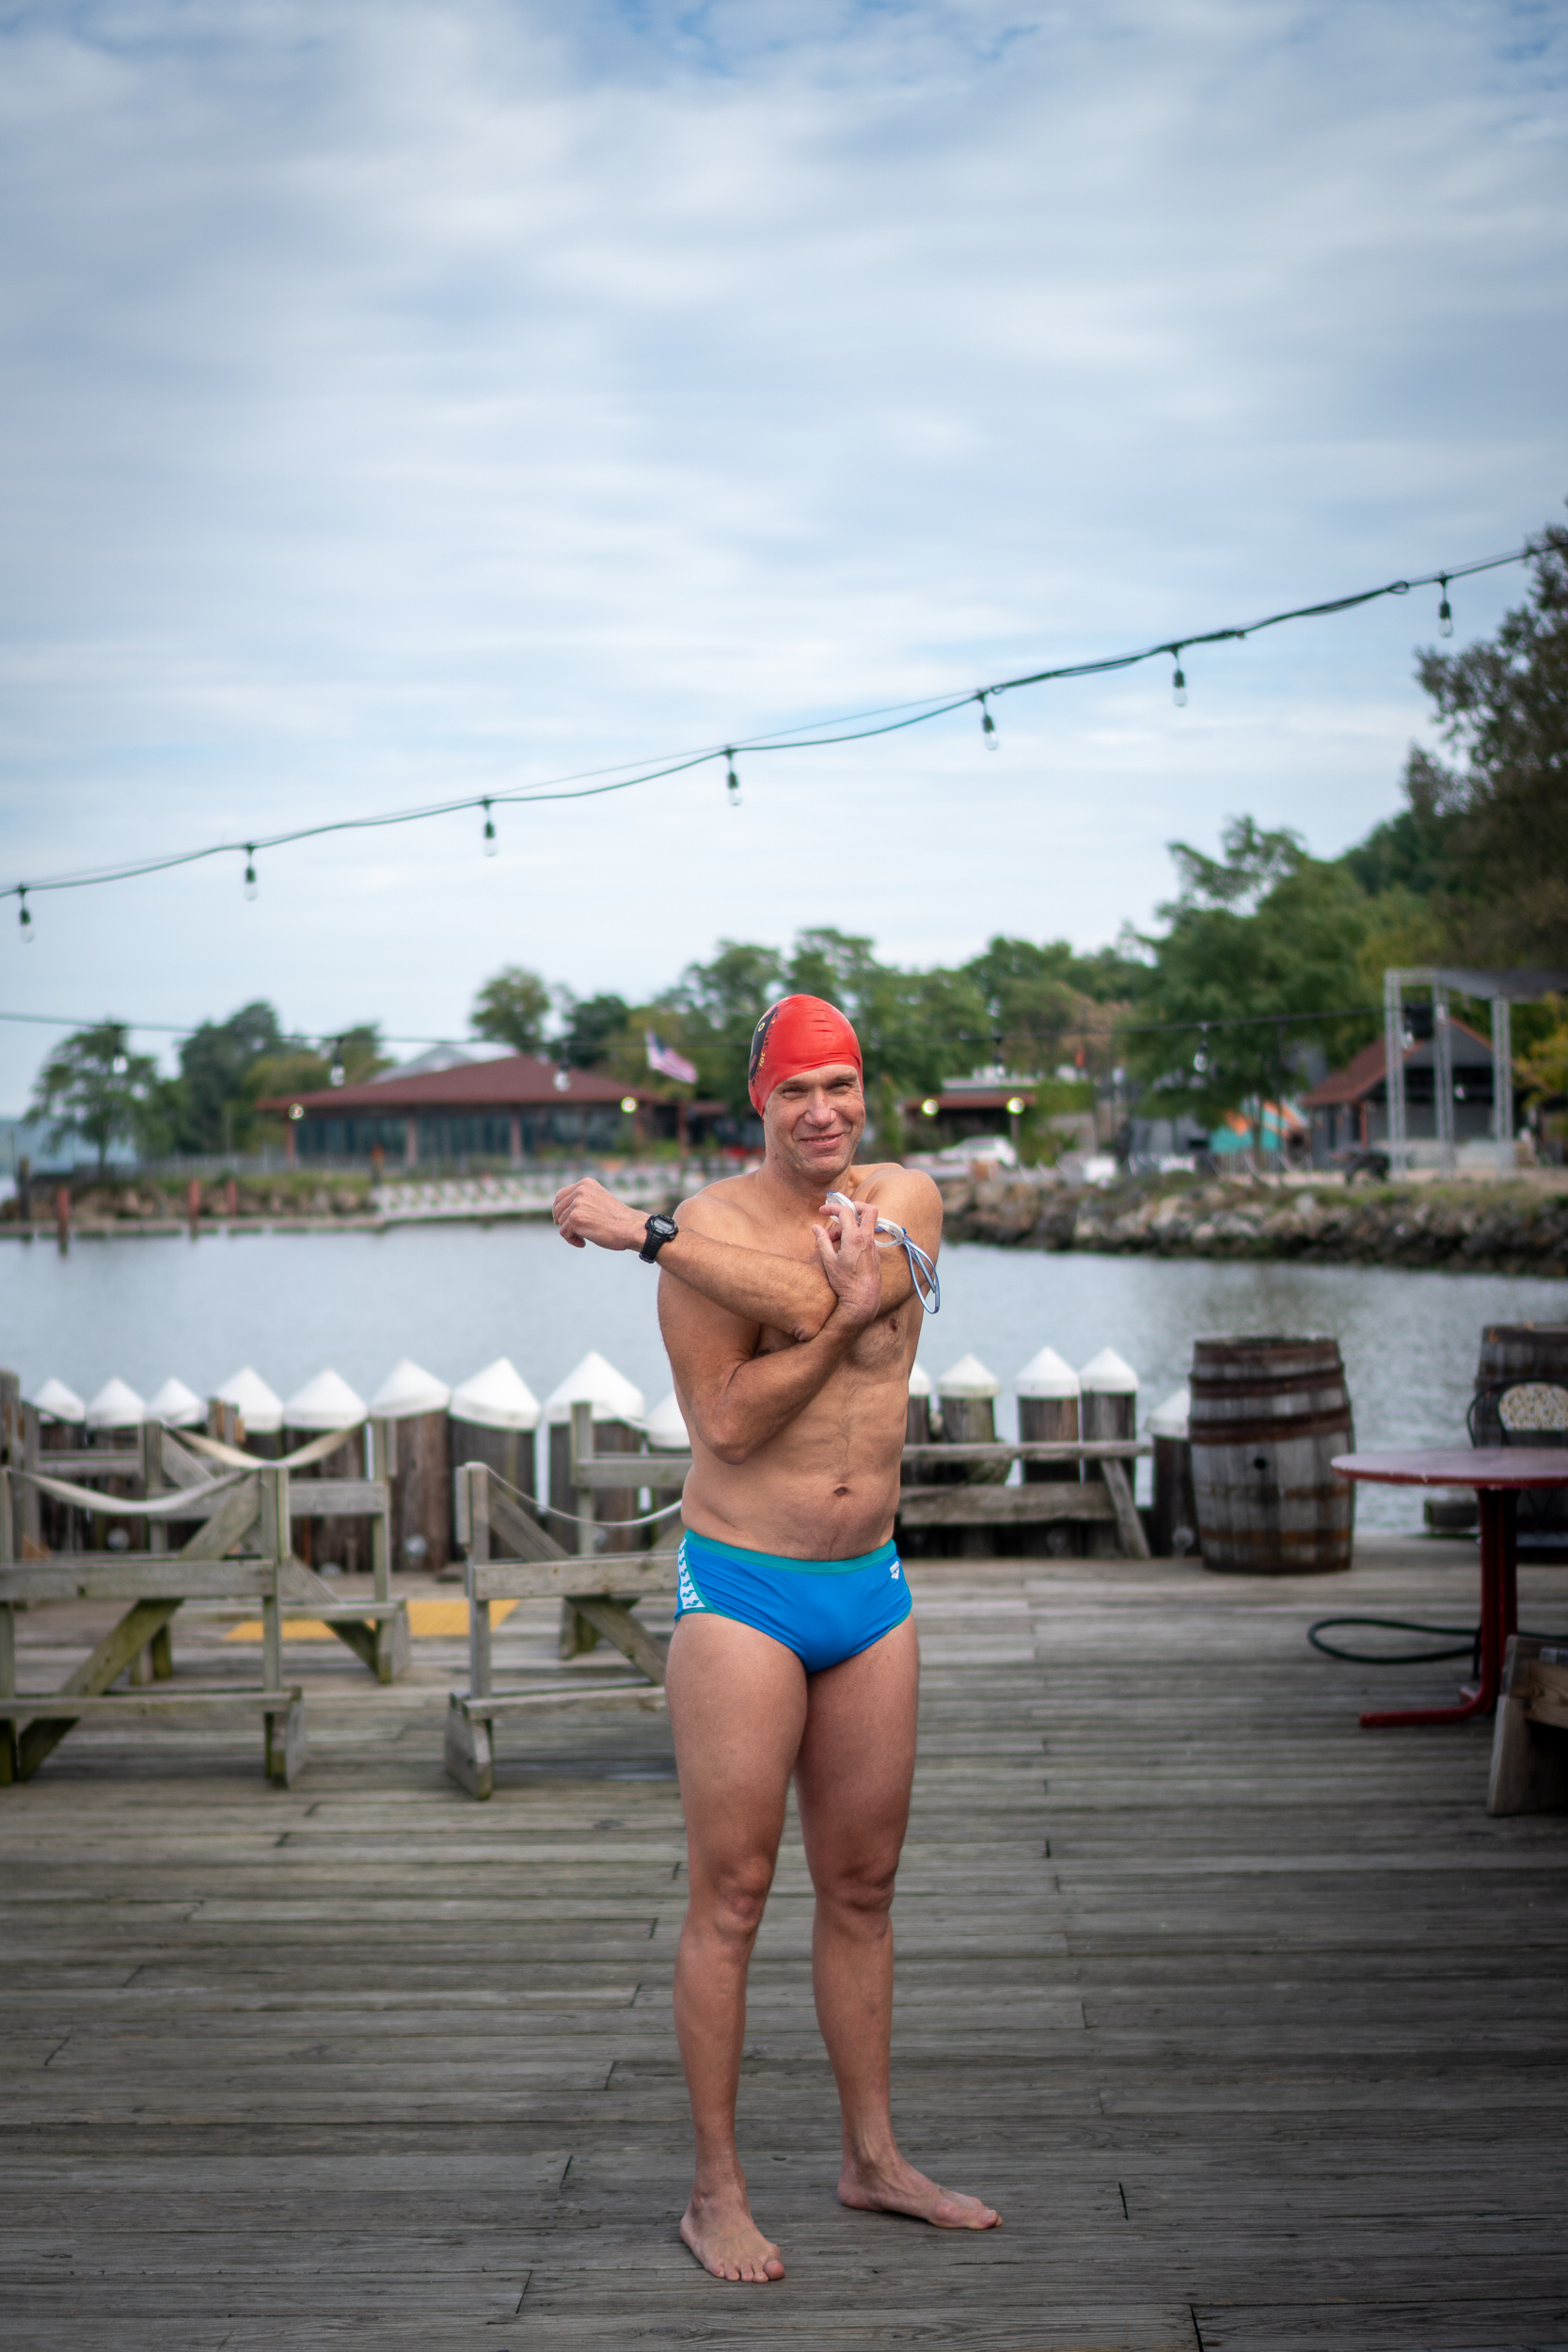 Sebastian Moll is a lifetime swimmer who has commited more to open water swimming in recent years.